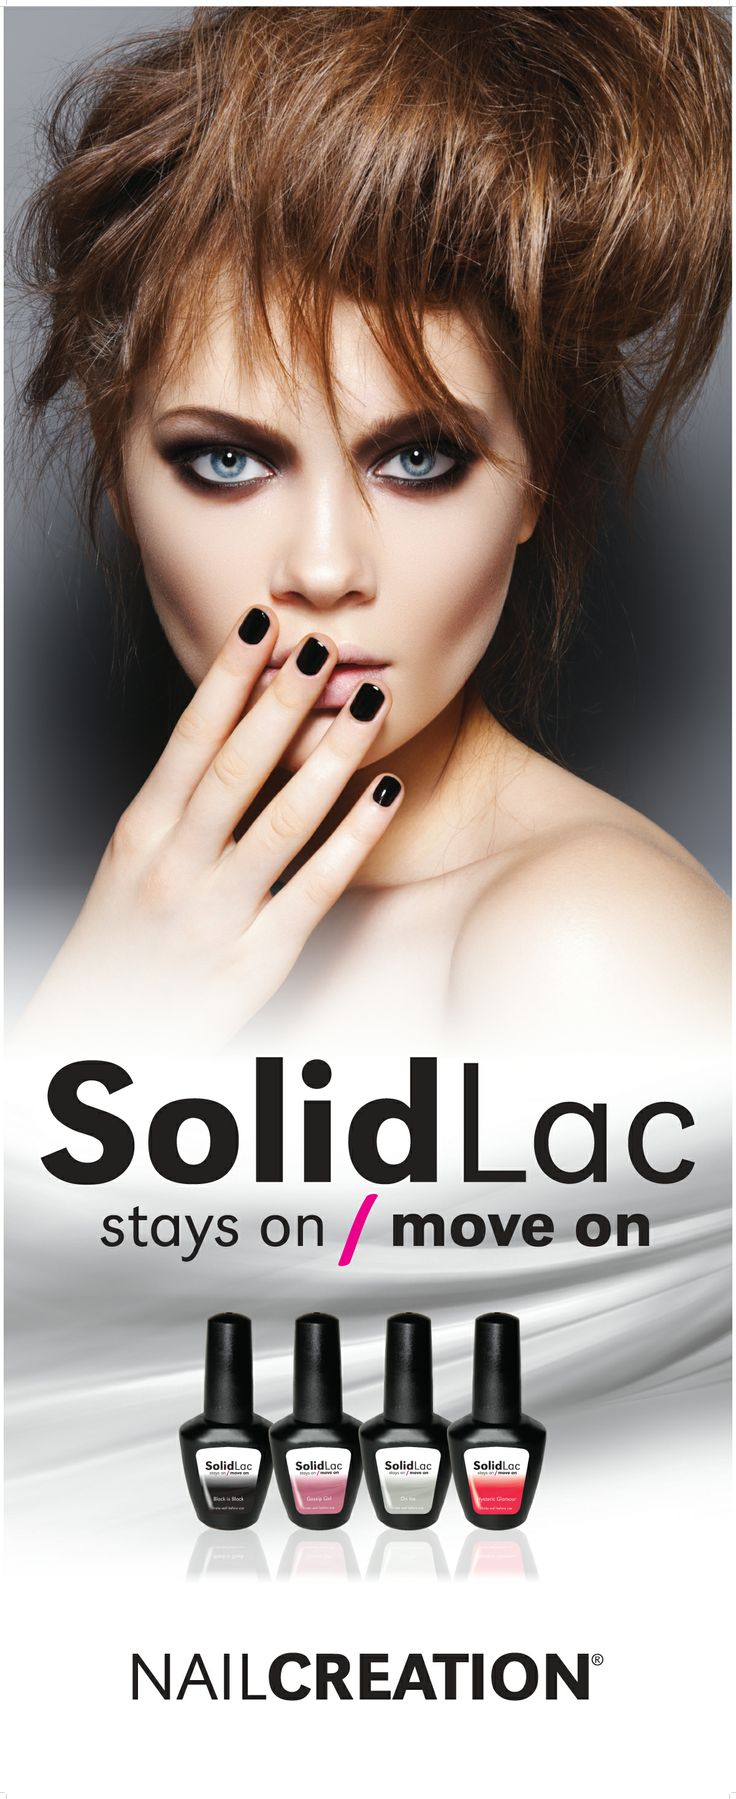 Nail Creation's Solid Lac poster